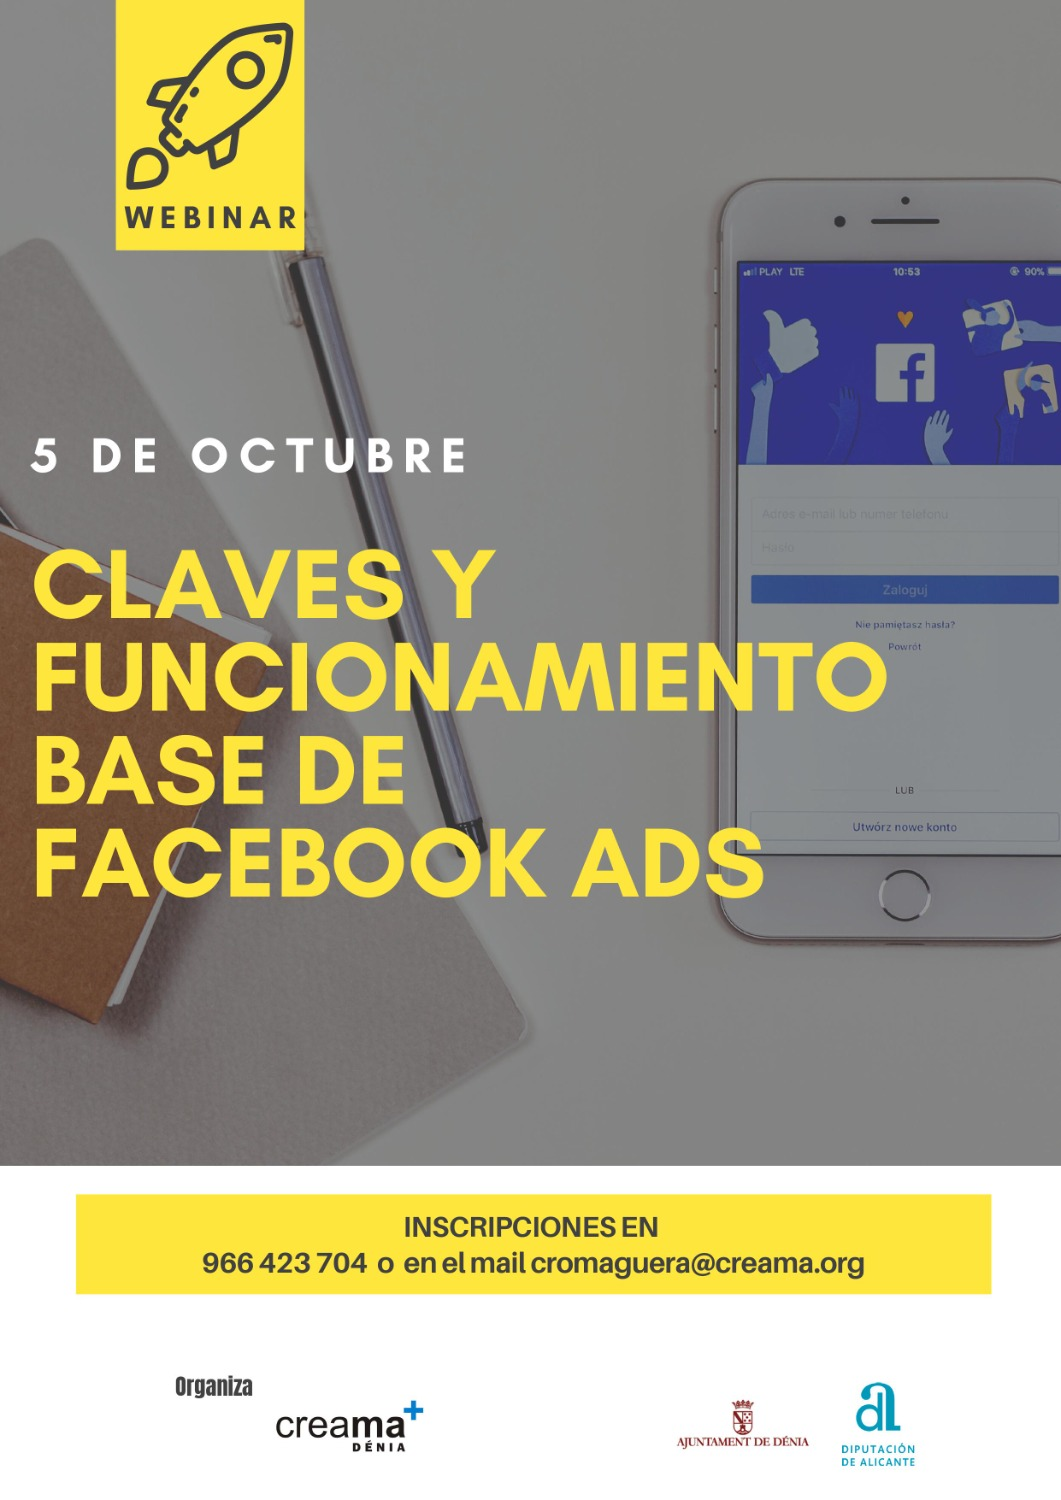 CLAVES Y FUNCIONAMIENTO BASE DE FACEBOOK ADS